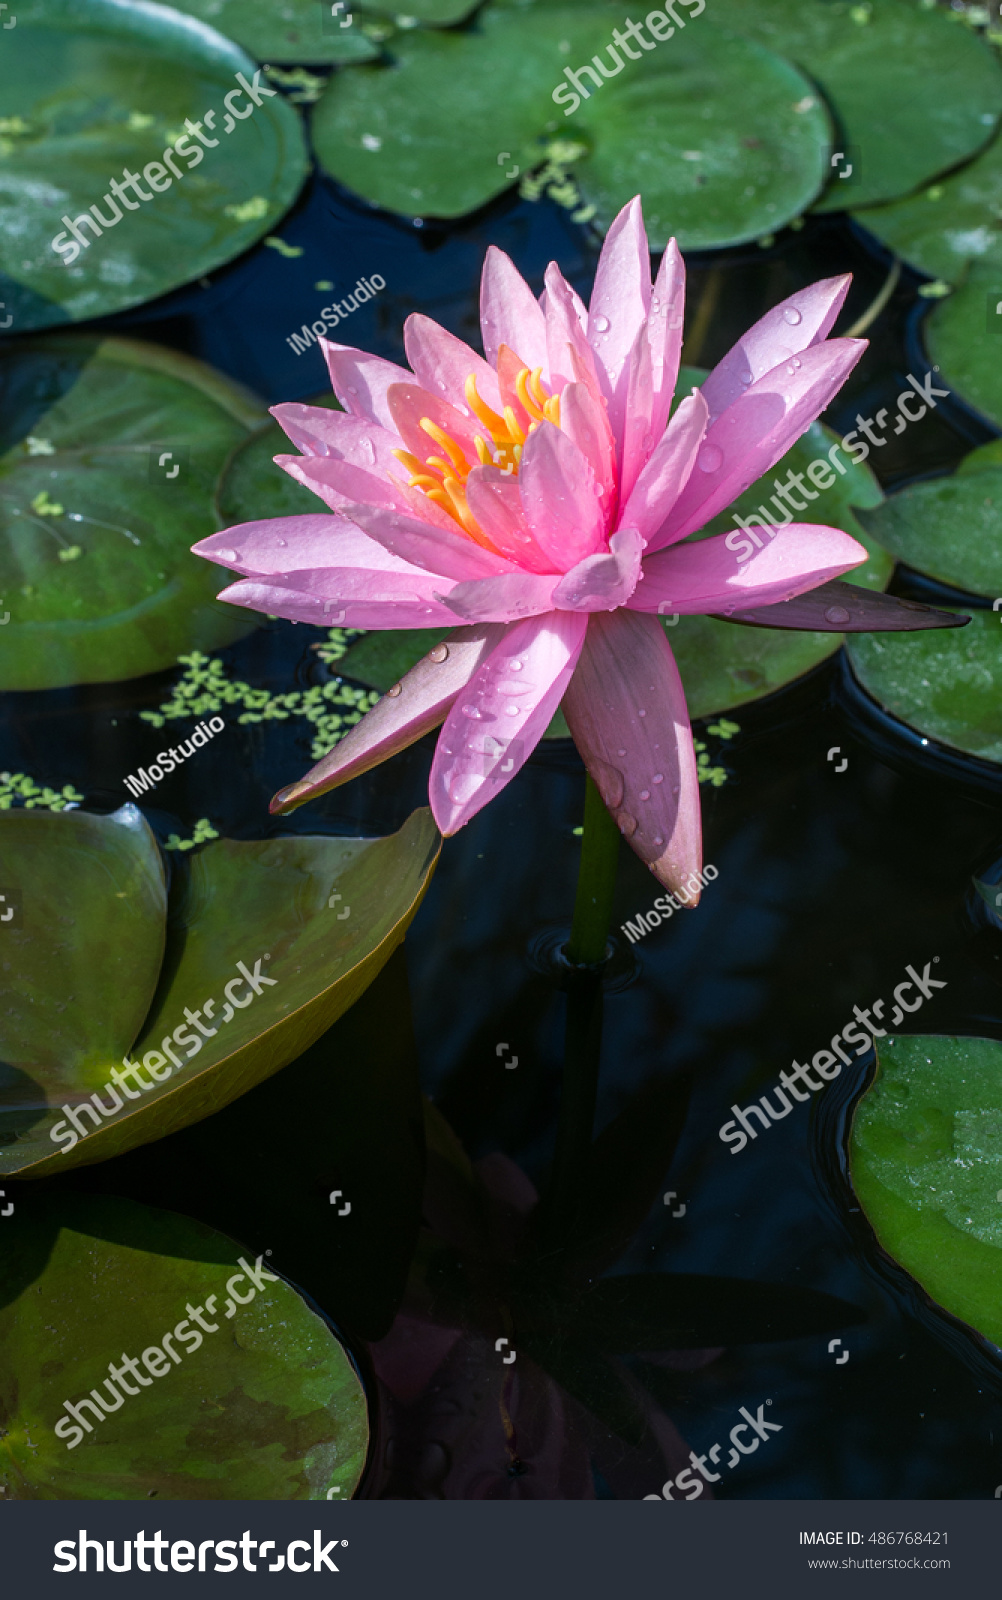 Lotus Flower Pond Stock Photo Download Now 486768421 Shutterstock